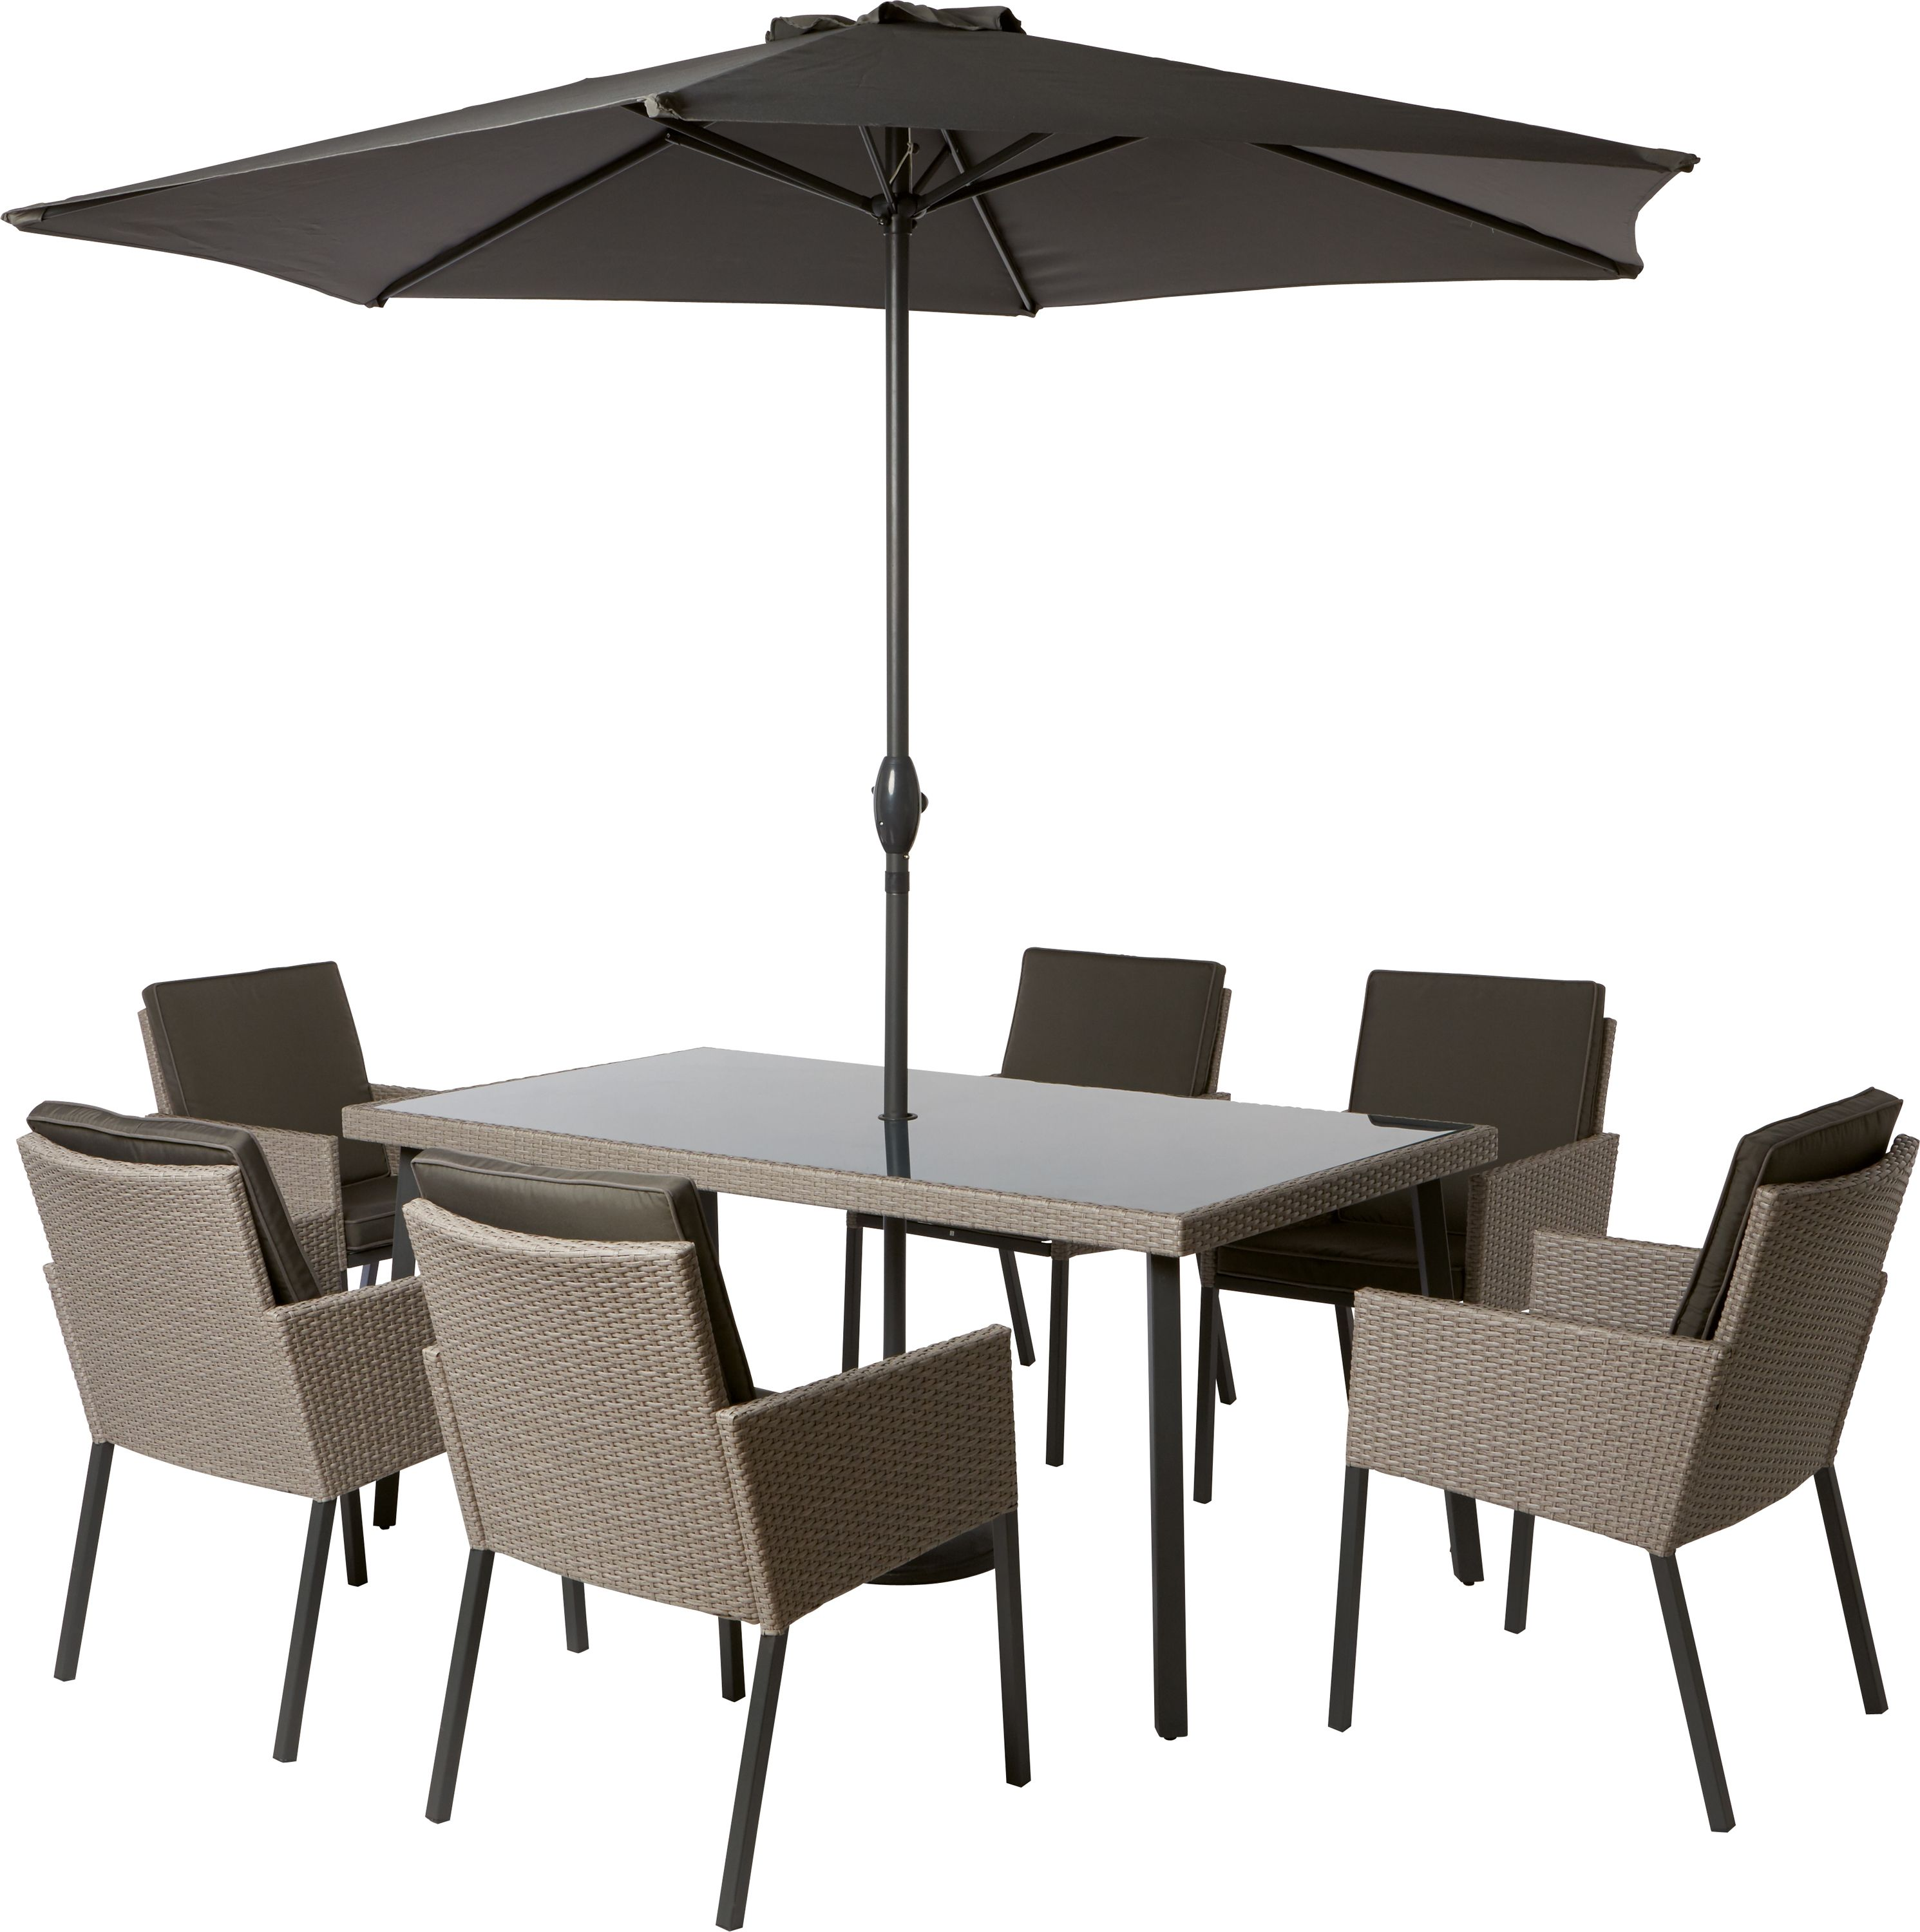 palermo rattan effect corner sofa set cover denim sleeper garden table and chairs argos patio